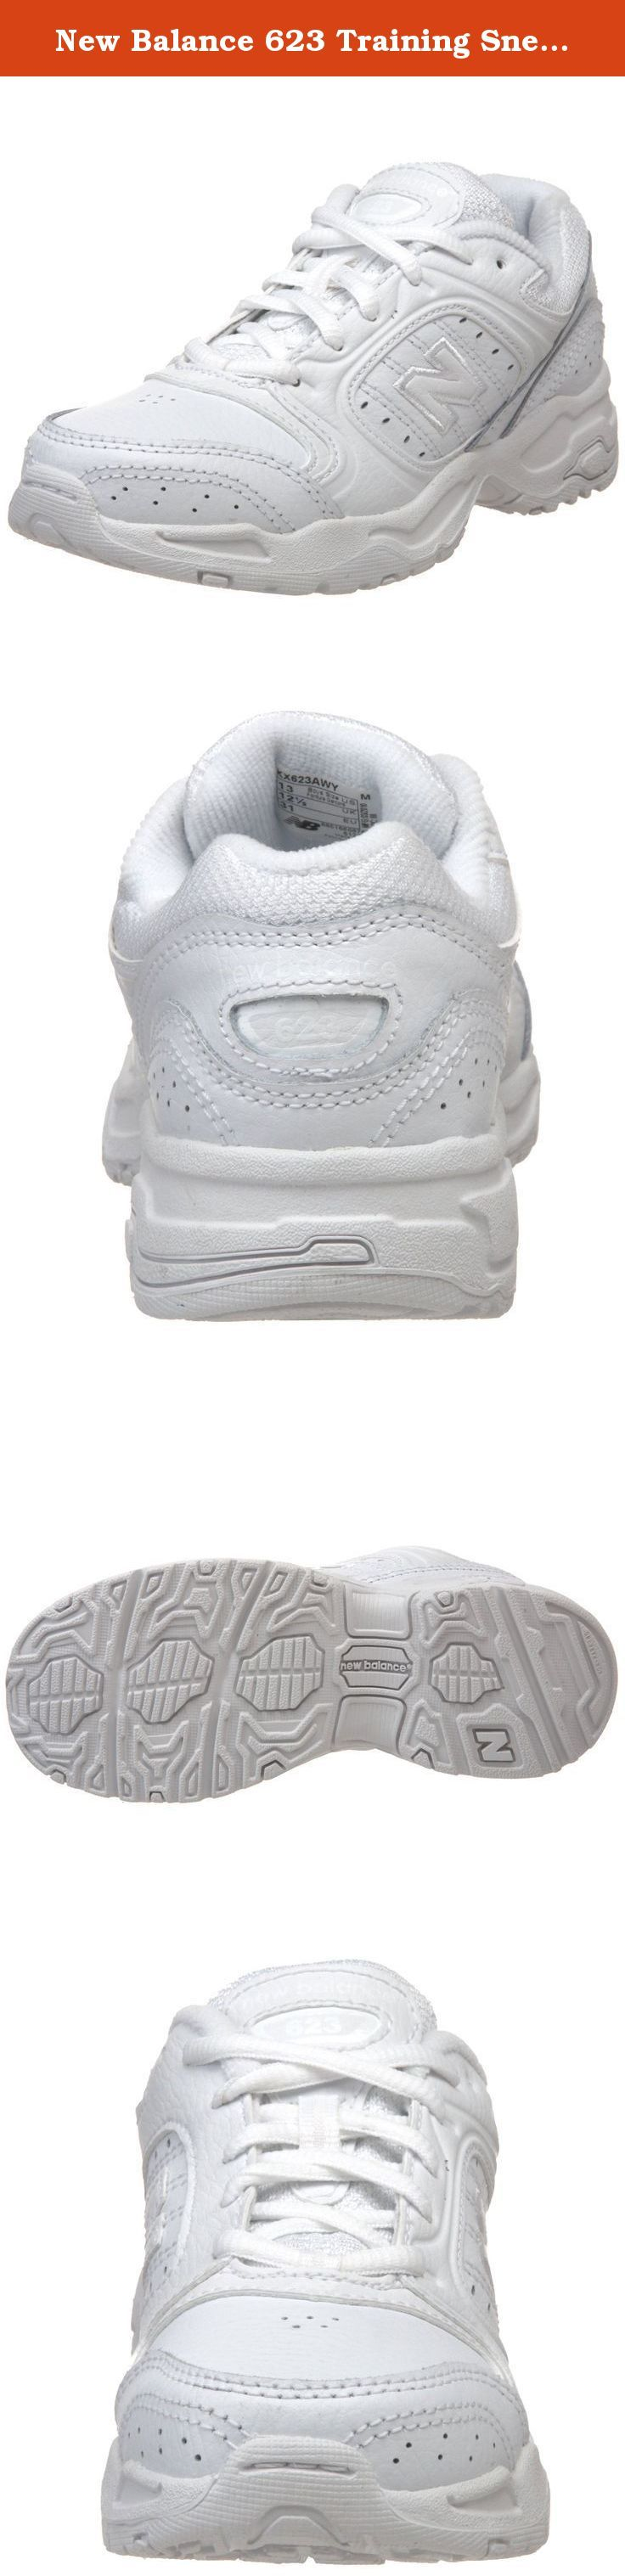 New Balance 623 Training Sneaker(Little Kid/Big Kid),White-AW,7 M US Big Kid. The New Balance 623 for kids, from pre-school to grade-school, is a versatile crosstrainer with a leather upper for comfort and a long-wearing rubber cup outsole for exceptional durability. Color: White.